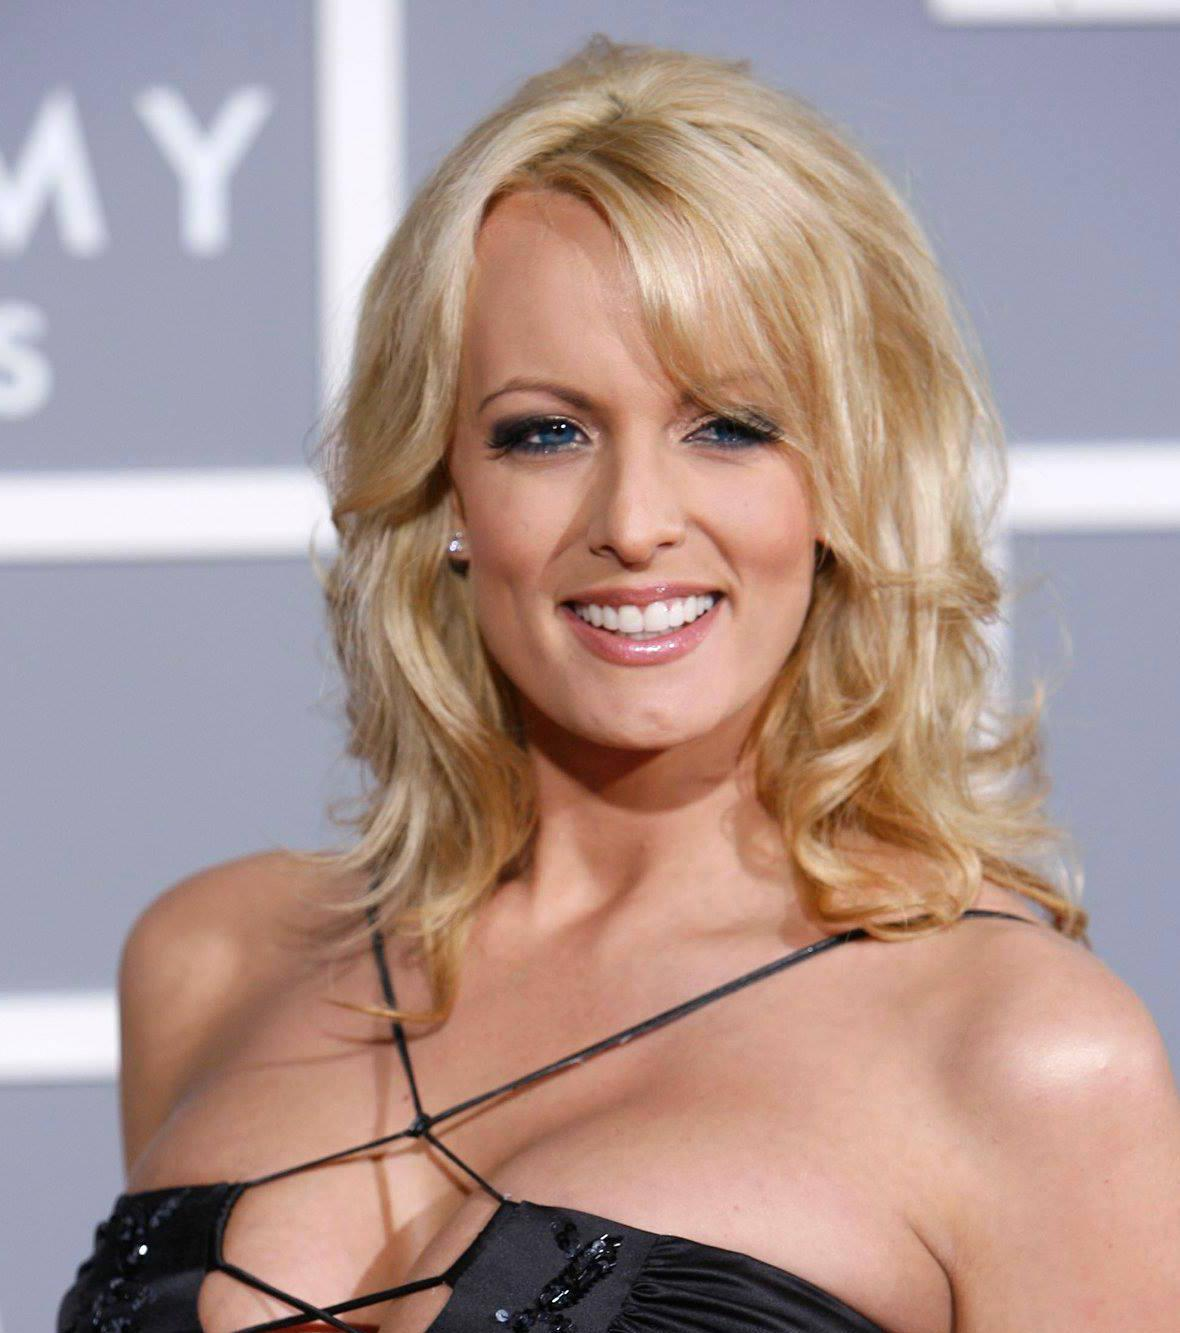 Trump's affair with Stormy Daniels reflects poorly on his reputation (Courtesy of Facebook).